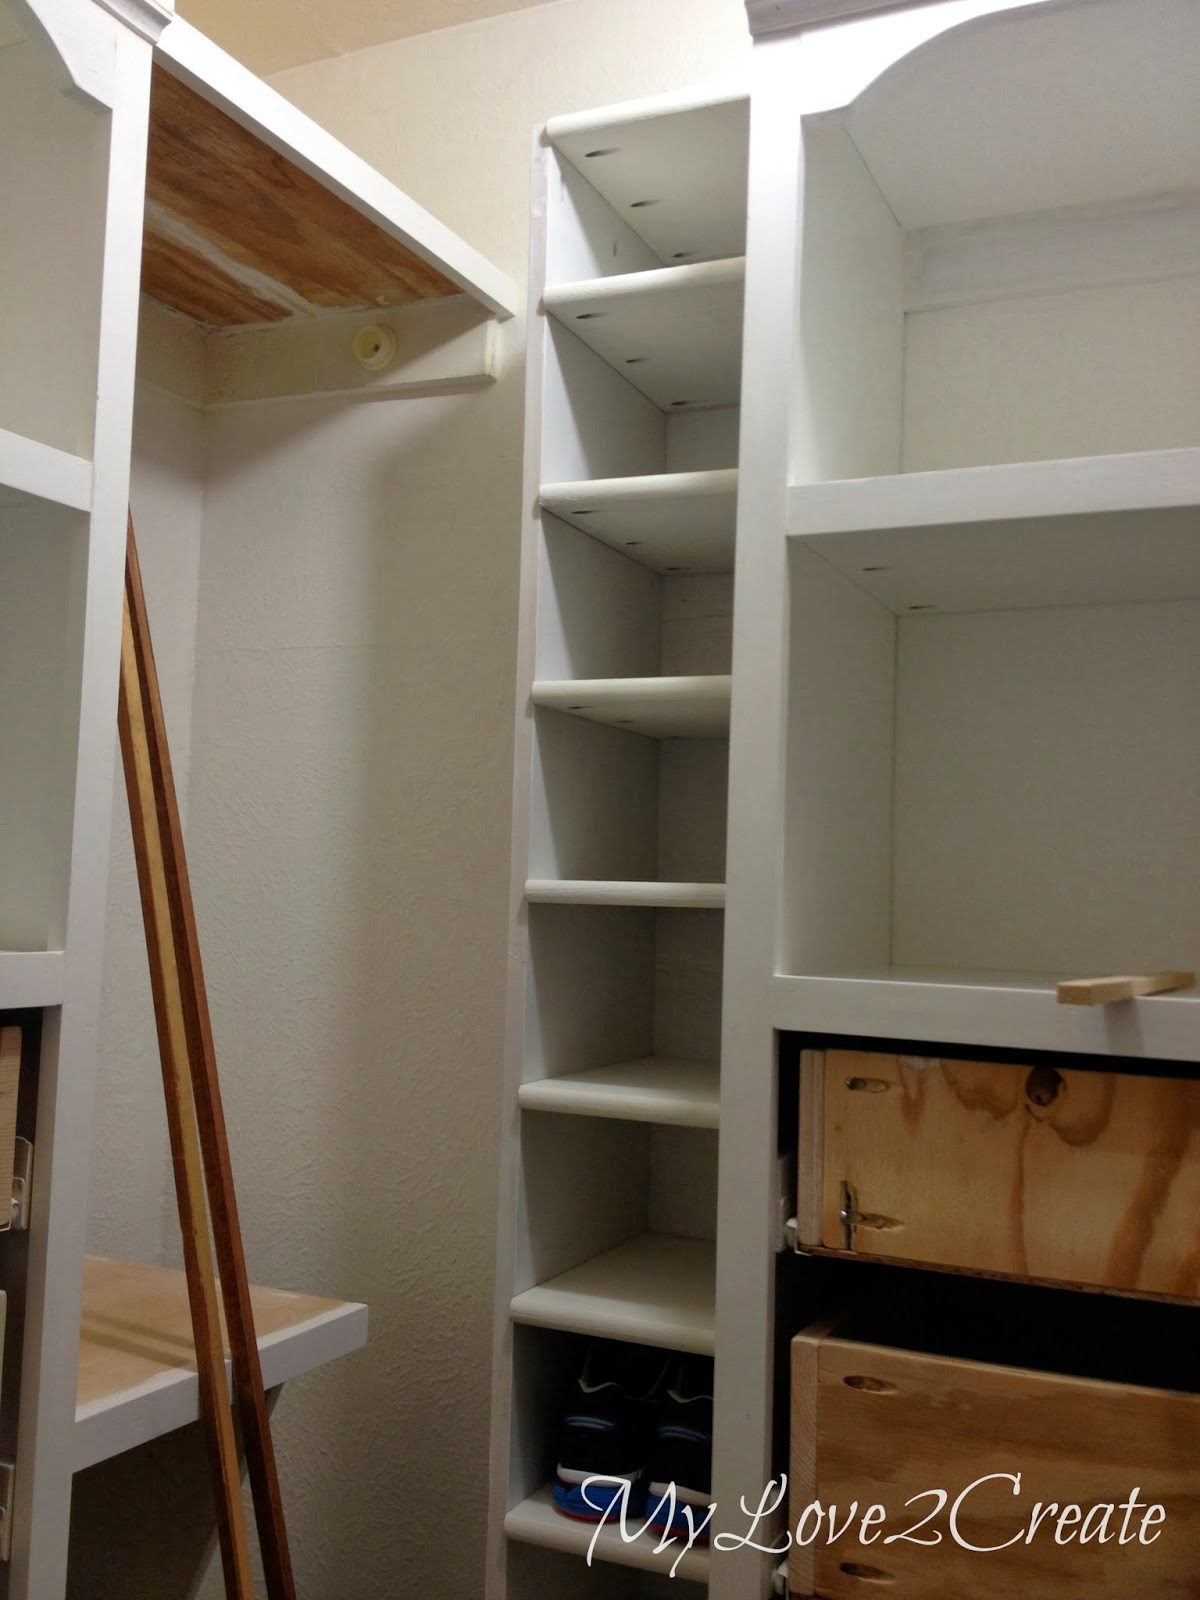 & Slanted Wall built-ins with Hidden Storage | My Love 2 Create